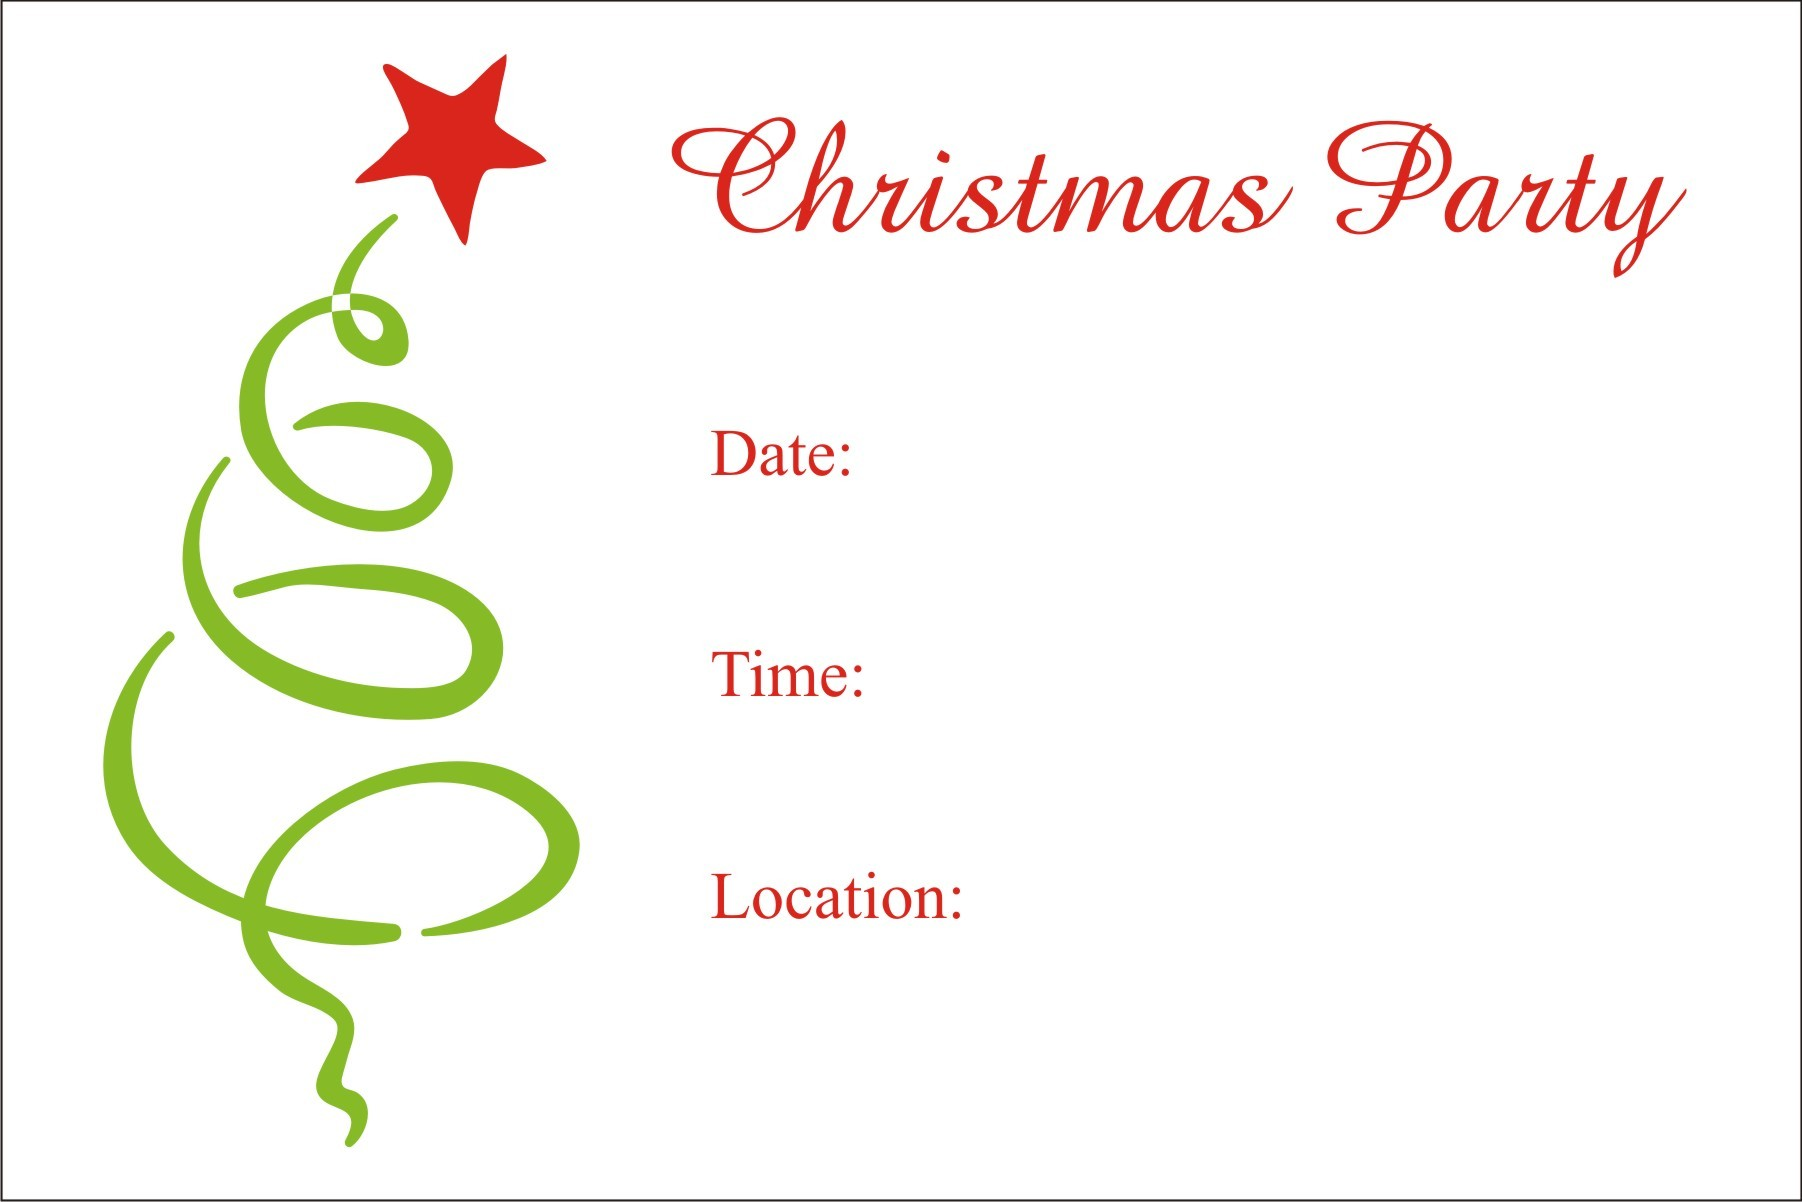 Printable Christmas Party Invitations can inspire you to create best invitation template